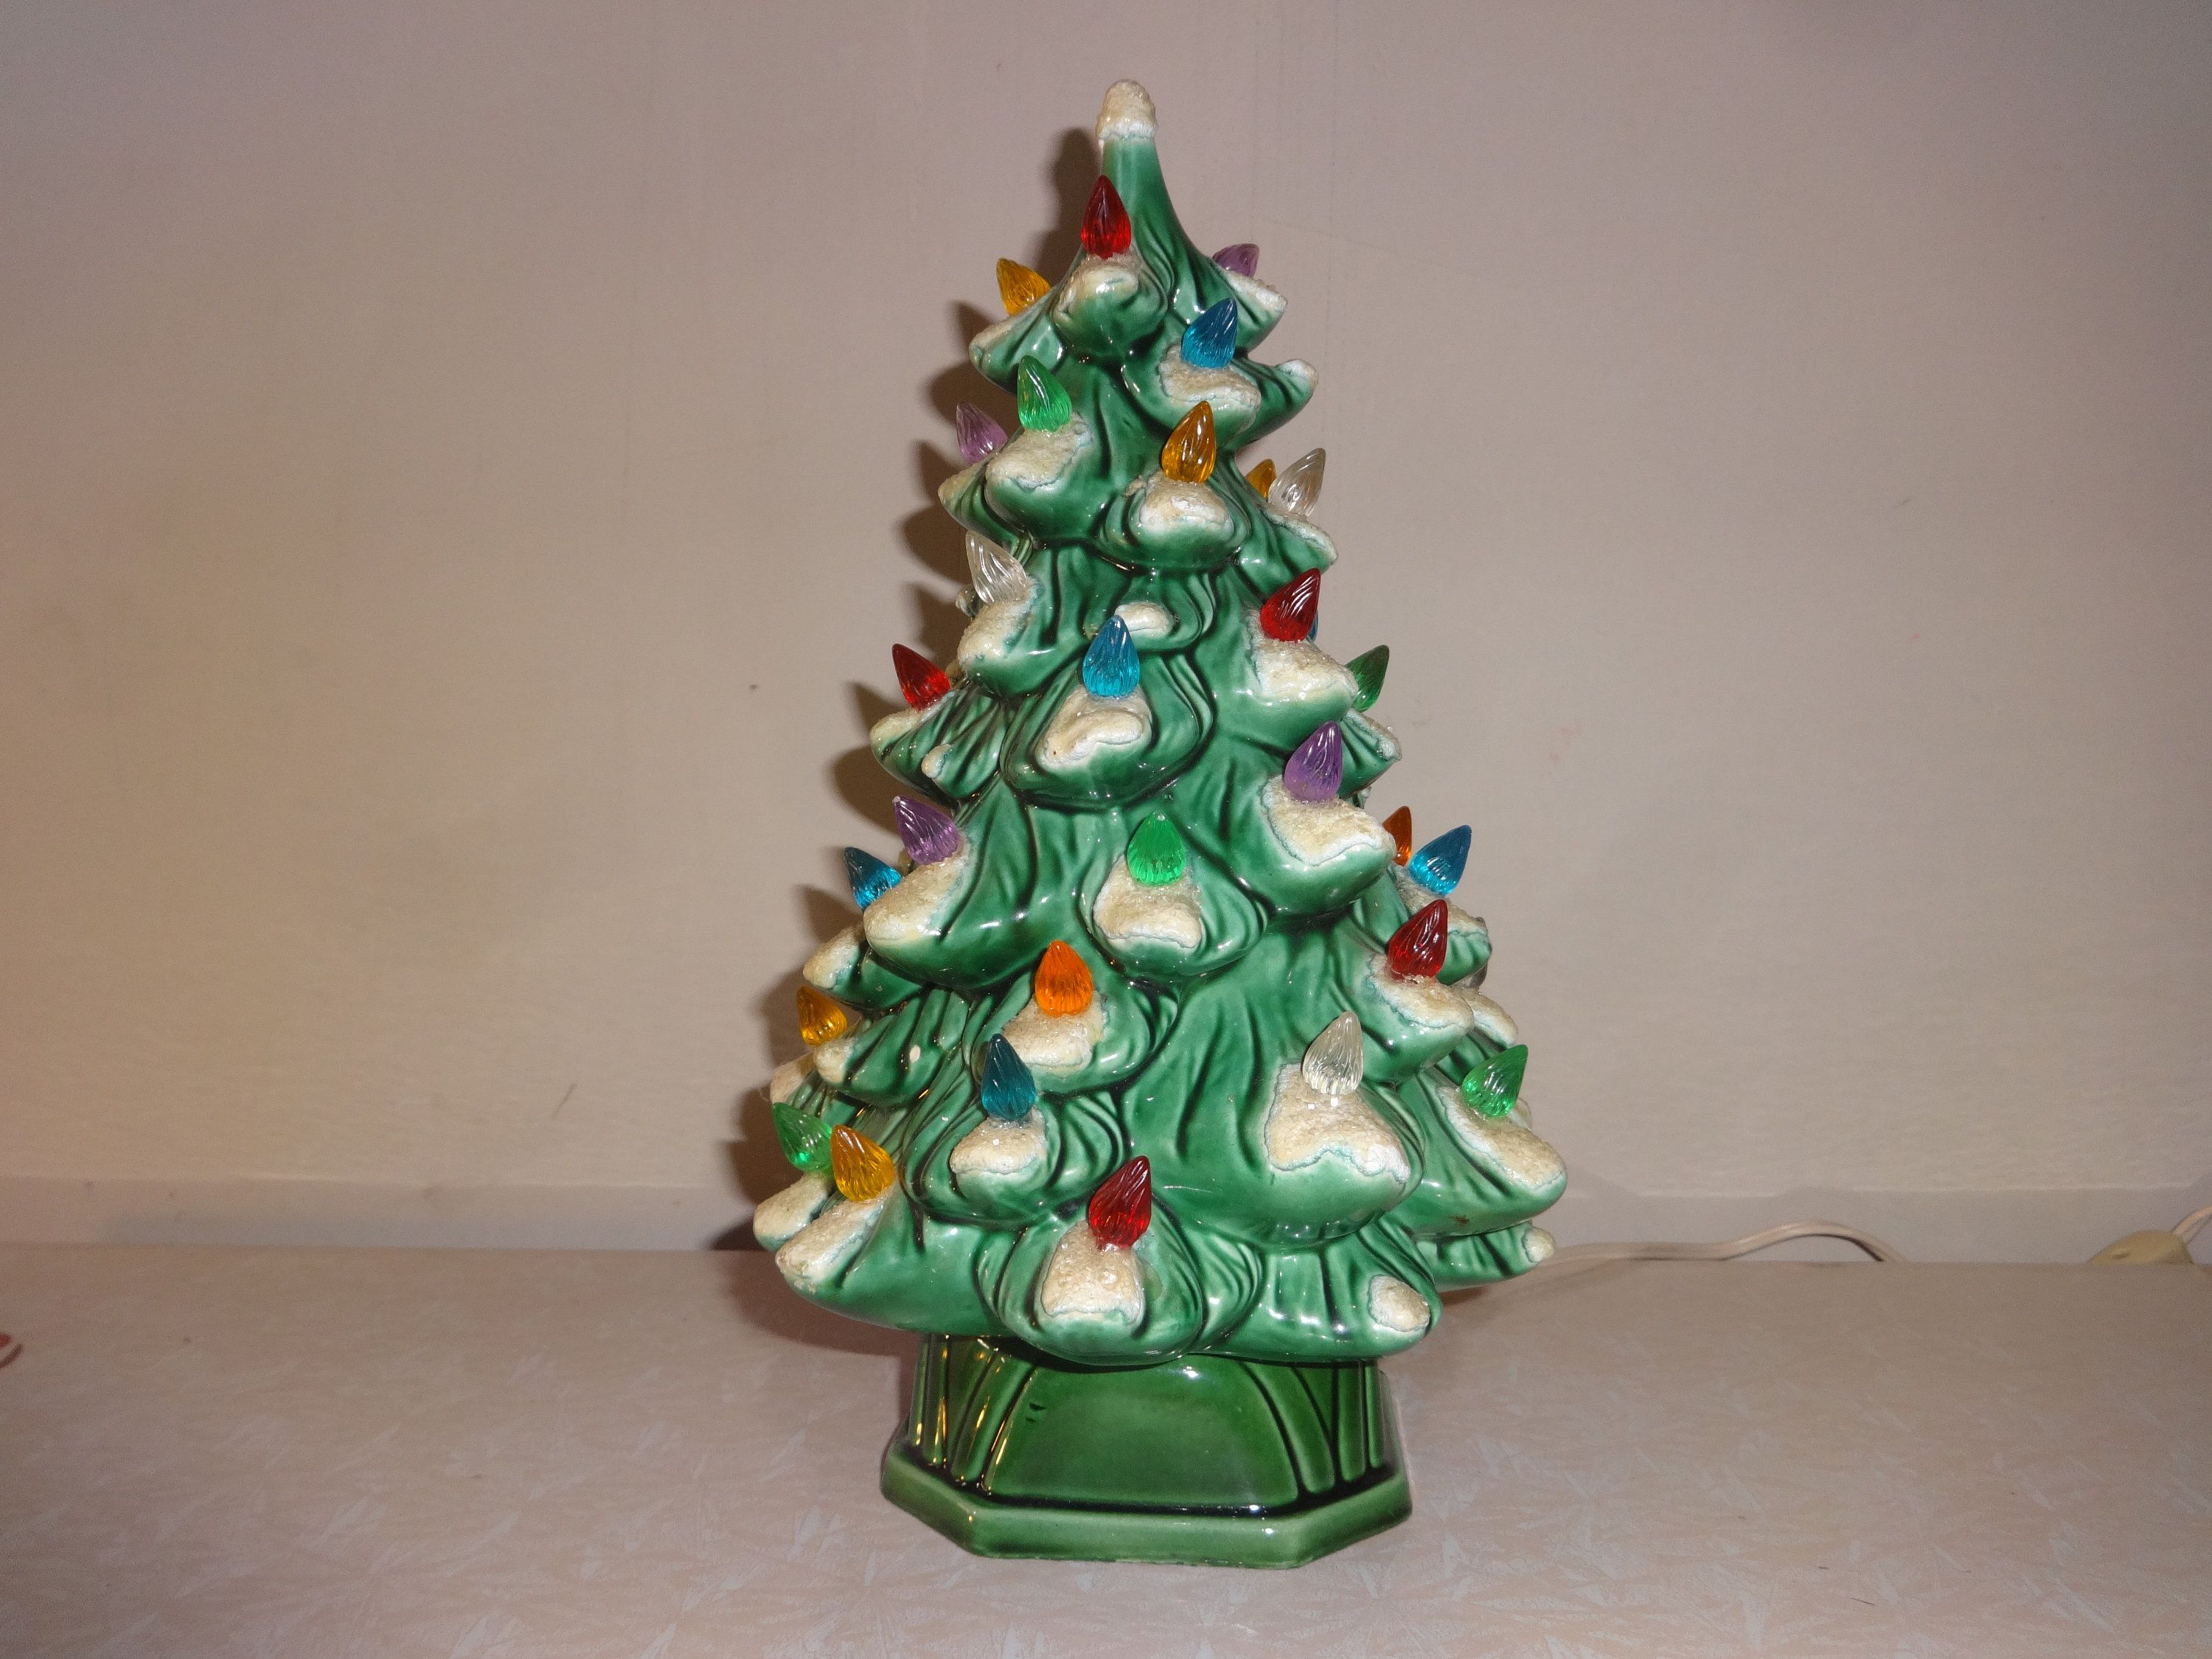 Vintage Holland Molds Ceramic Snow Capped Christmas Tree With Multi Colored Lights Ceramic Christmas Trees Christmas Tree With Snow Christmas Tree